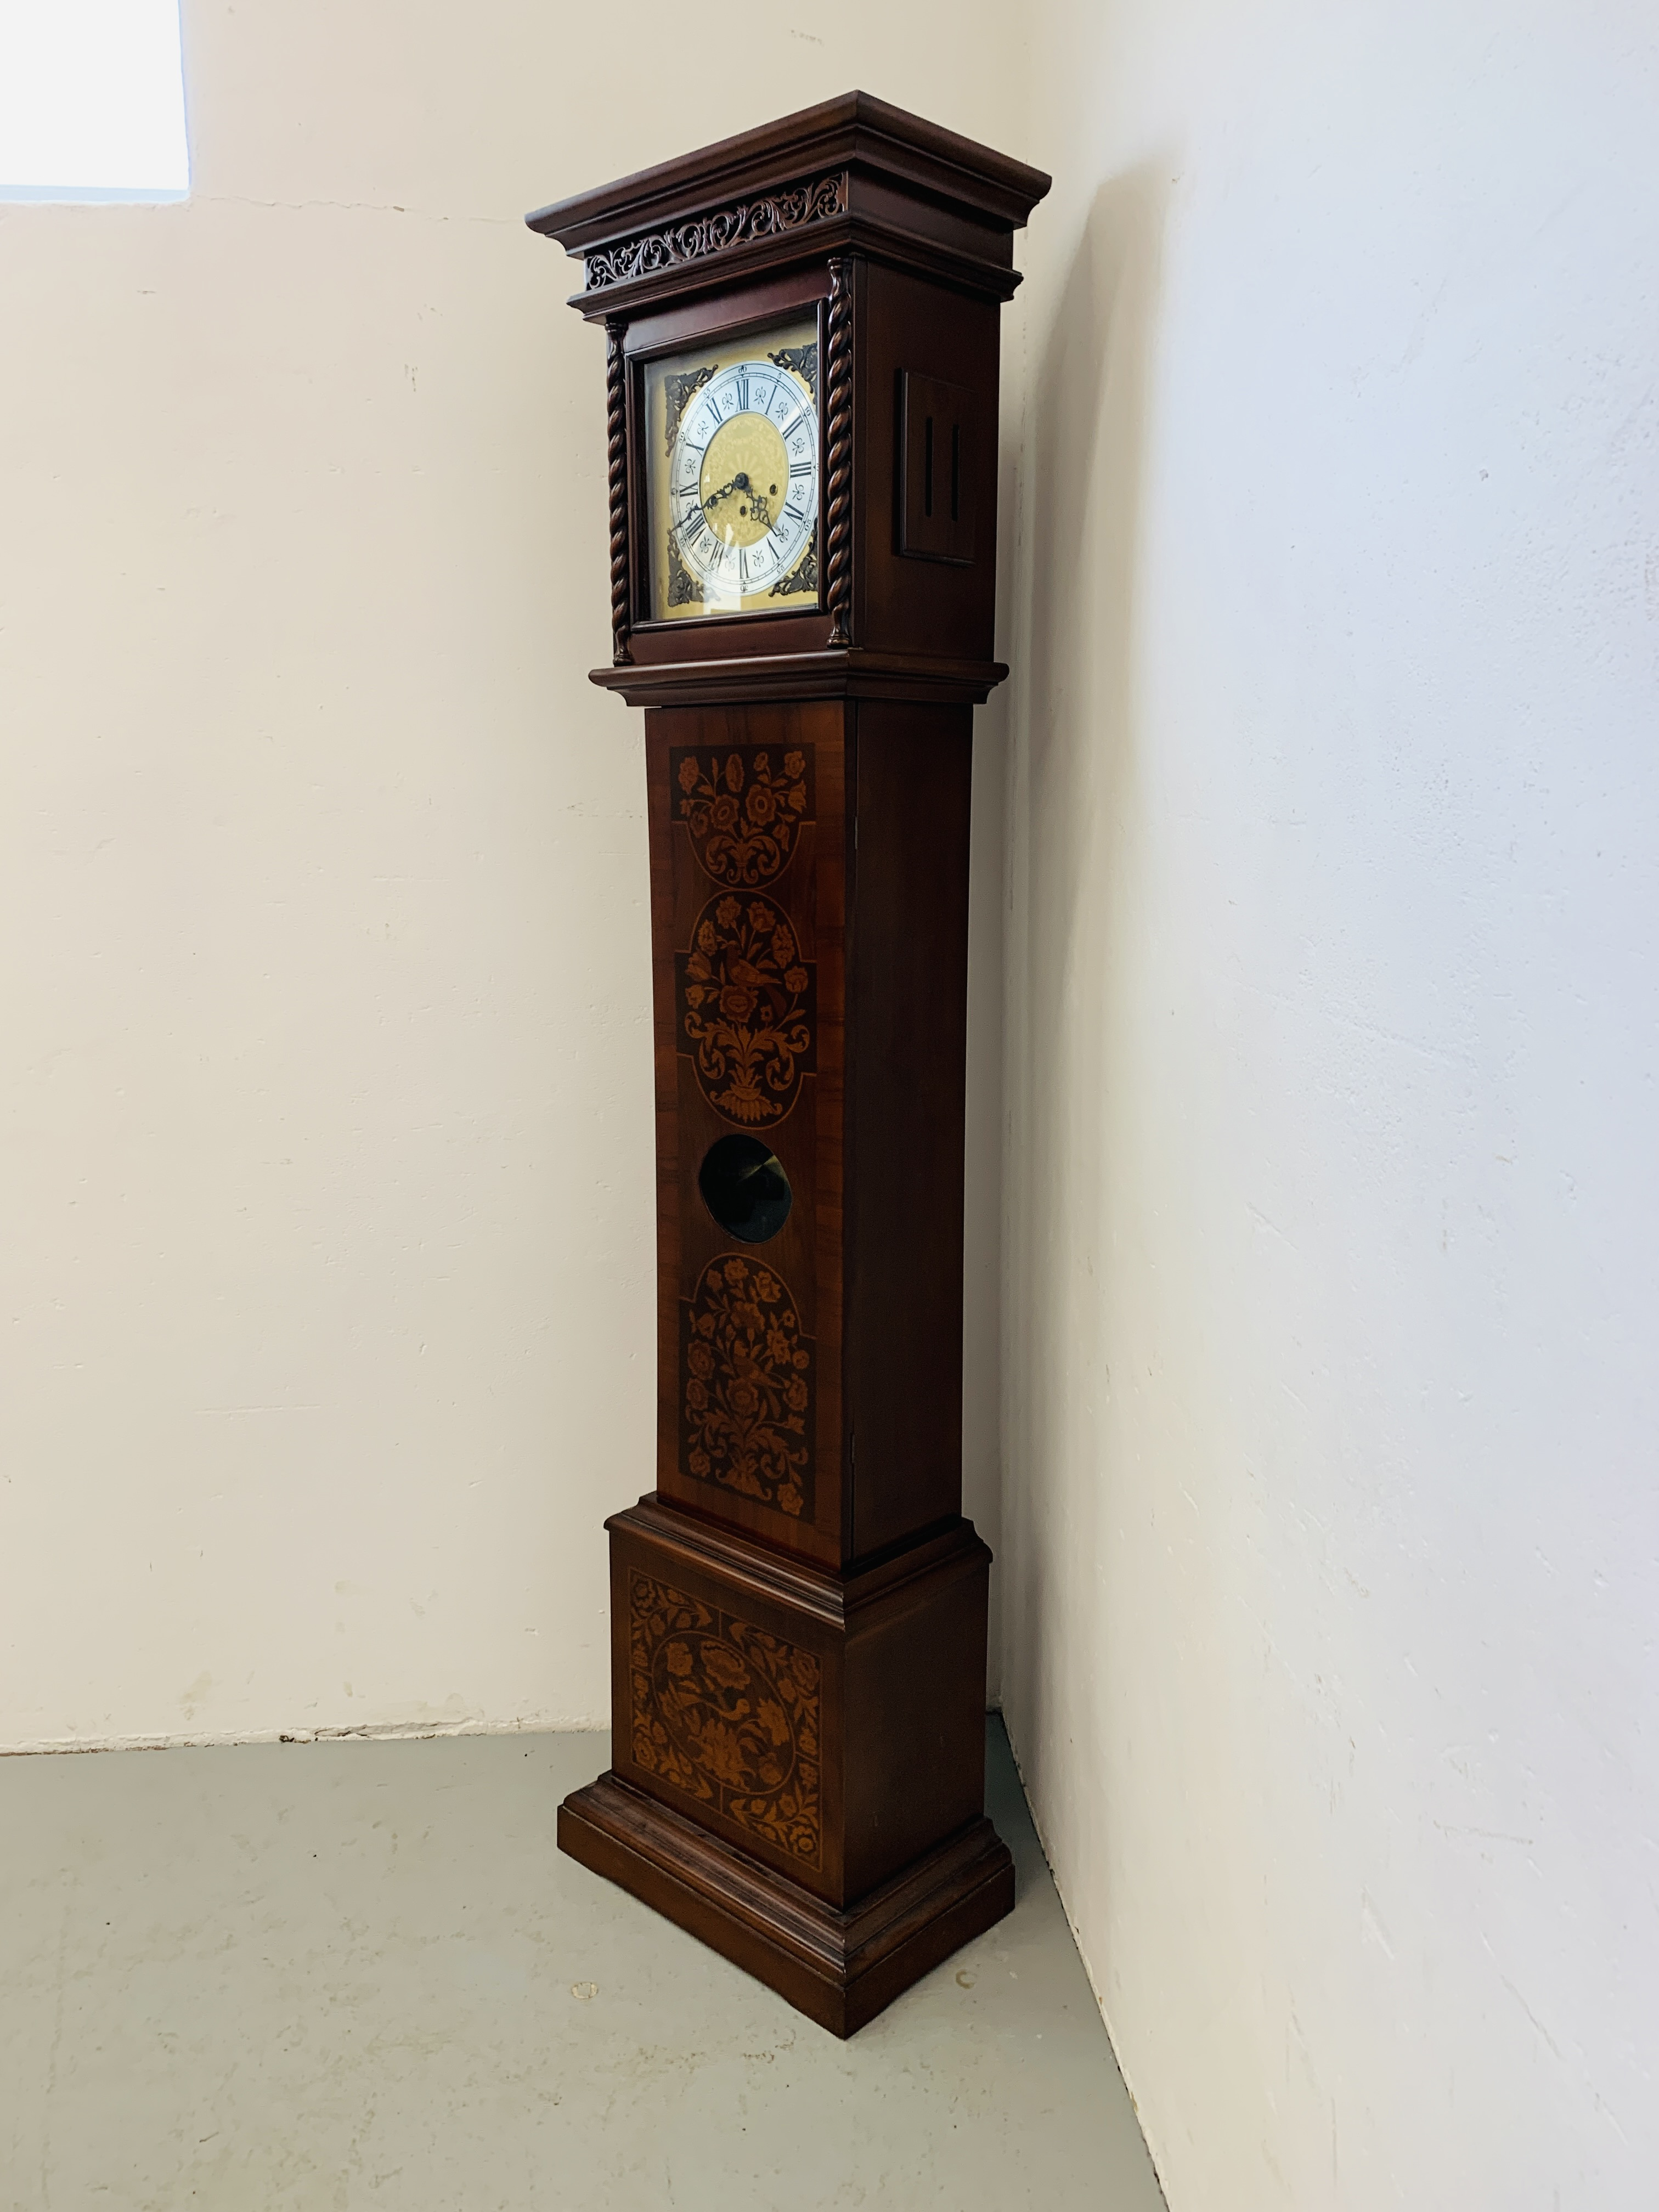 A GOOD QUALITY REPRODUCTION LONG CASE CLOCK - WESTMINSTER CHIME - SOLD AS SEEN - Image 3 of 19